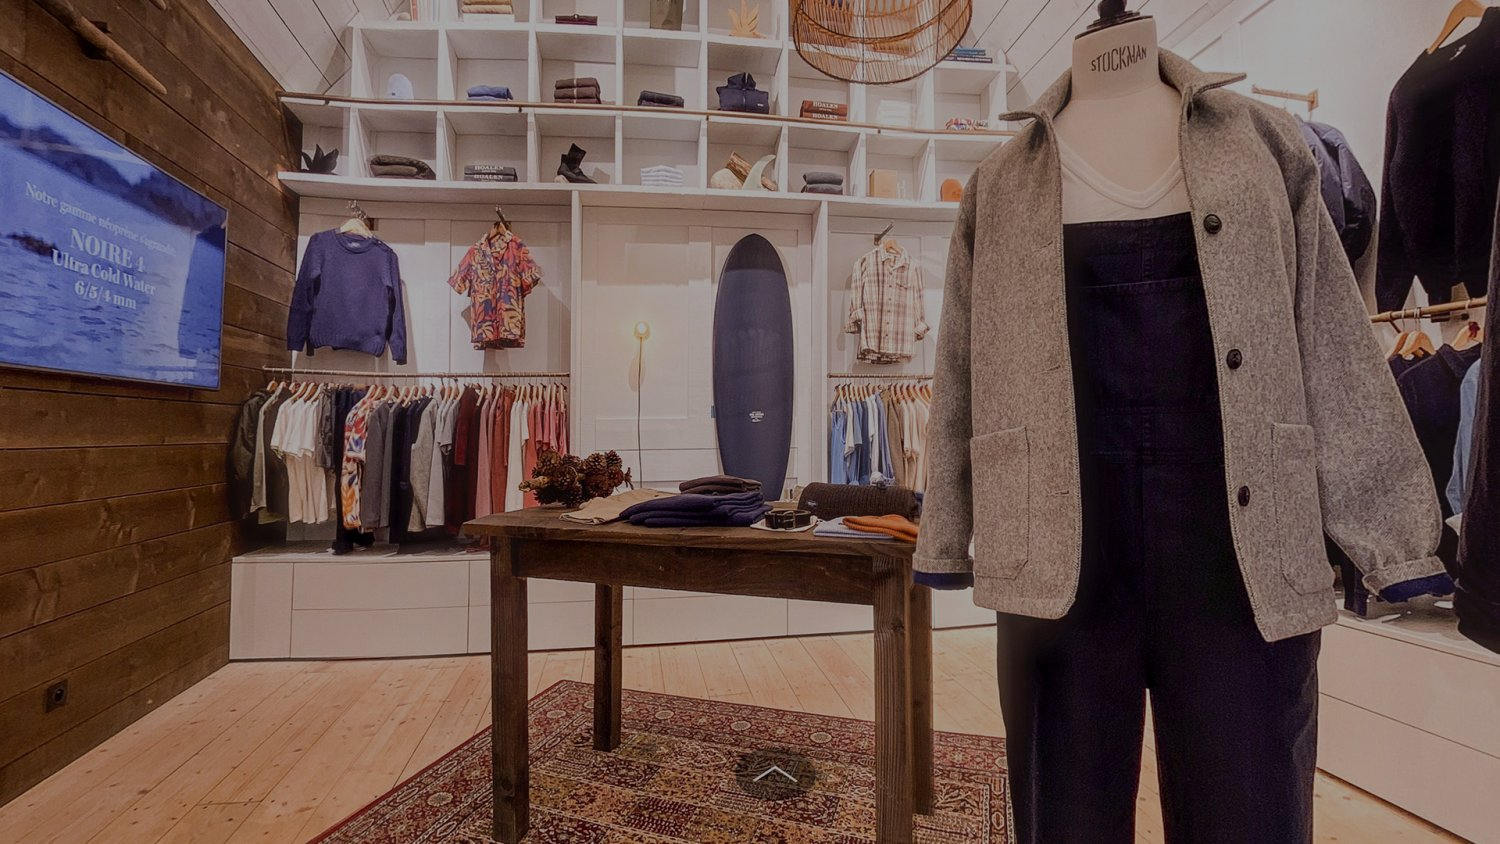 Virtual Tour - Step in our ocean stores